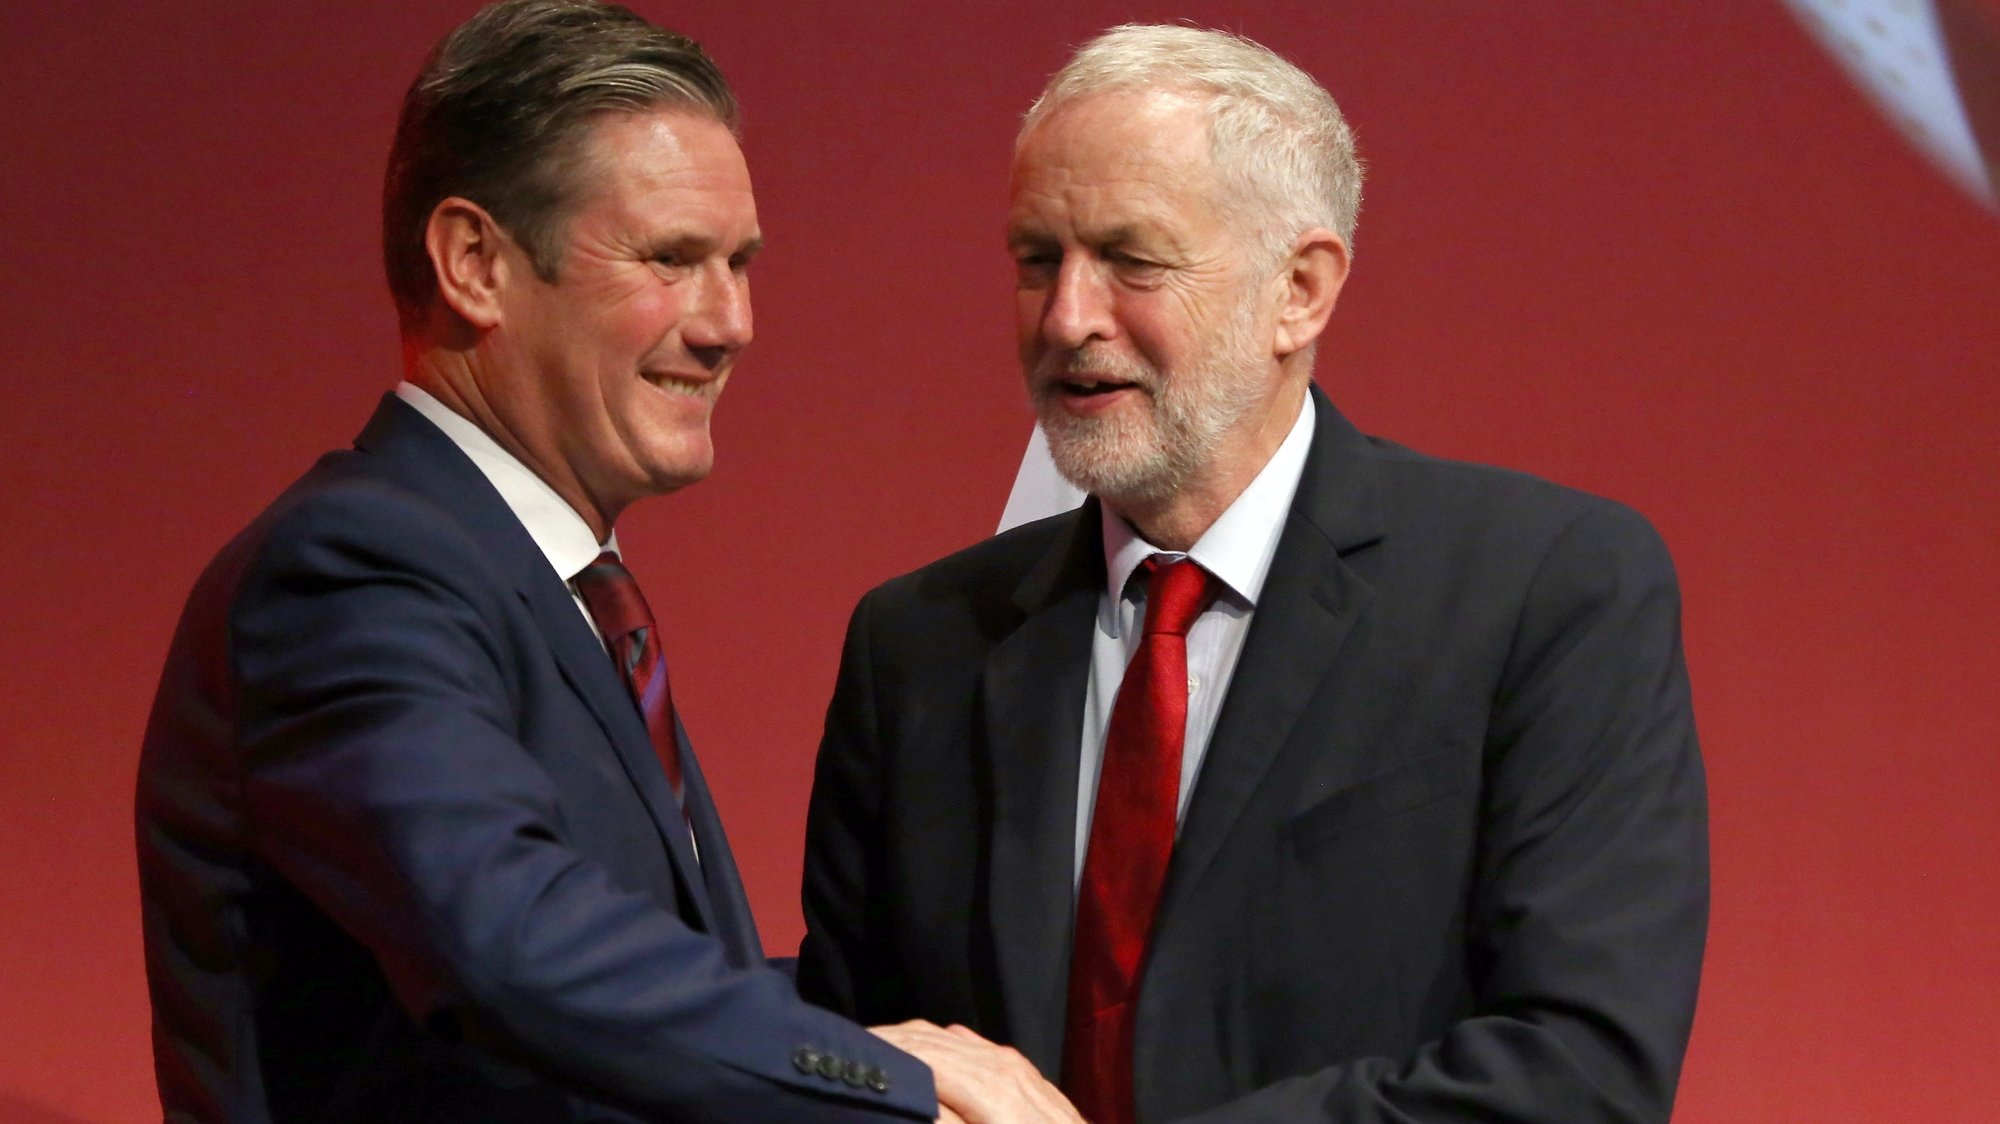 epa08342489 (FILE) - Britain's opposition Labour Party then Spokesperson for Exiting the EU, Keir Starmer (L) is congratulated following his speech by then party leader Jeremy Corbyn (R) at the Labour Party Conference in Brighton, Britain, 25 September 2017 (reissued 04 April 2020). Keir Starmer was announced elected succesor to Labour Party leader Jeremy Corbyn on 04 April 2020 in a ballot of party members, trade unionists and other supporters.  EPA/NEIL HALL *** Local Caption *** 53790919